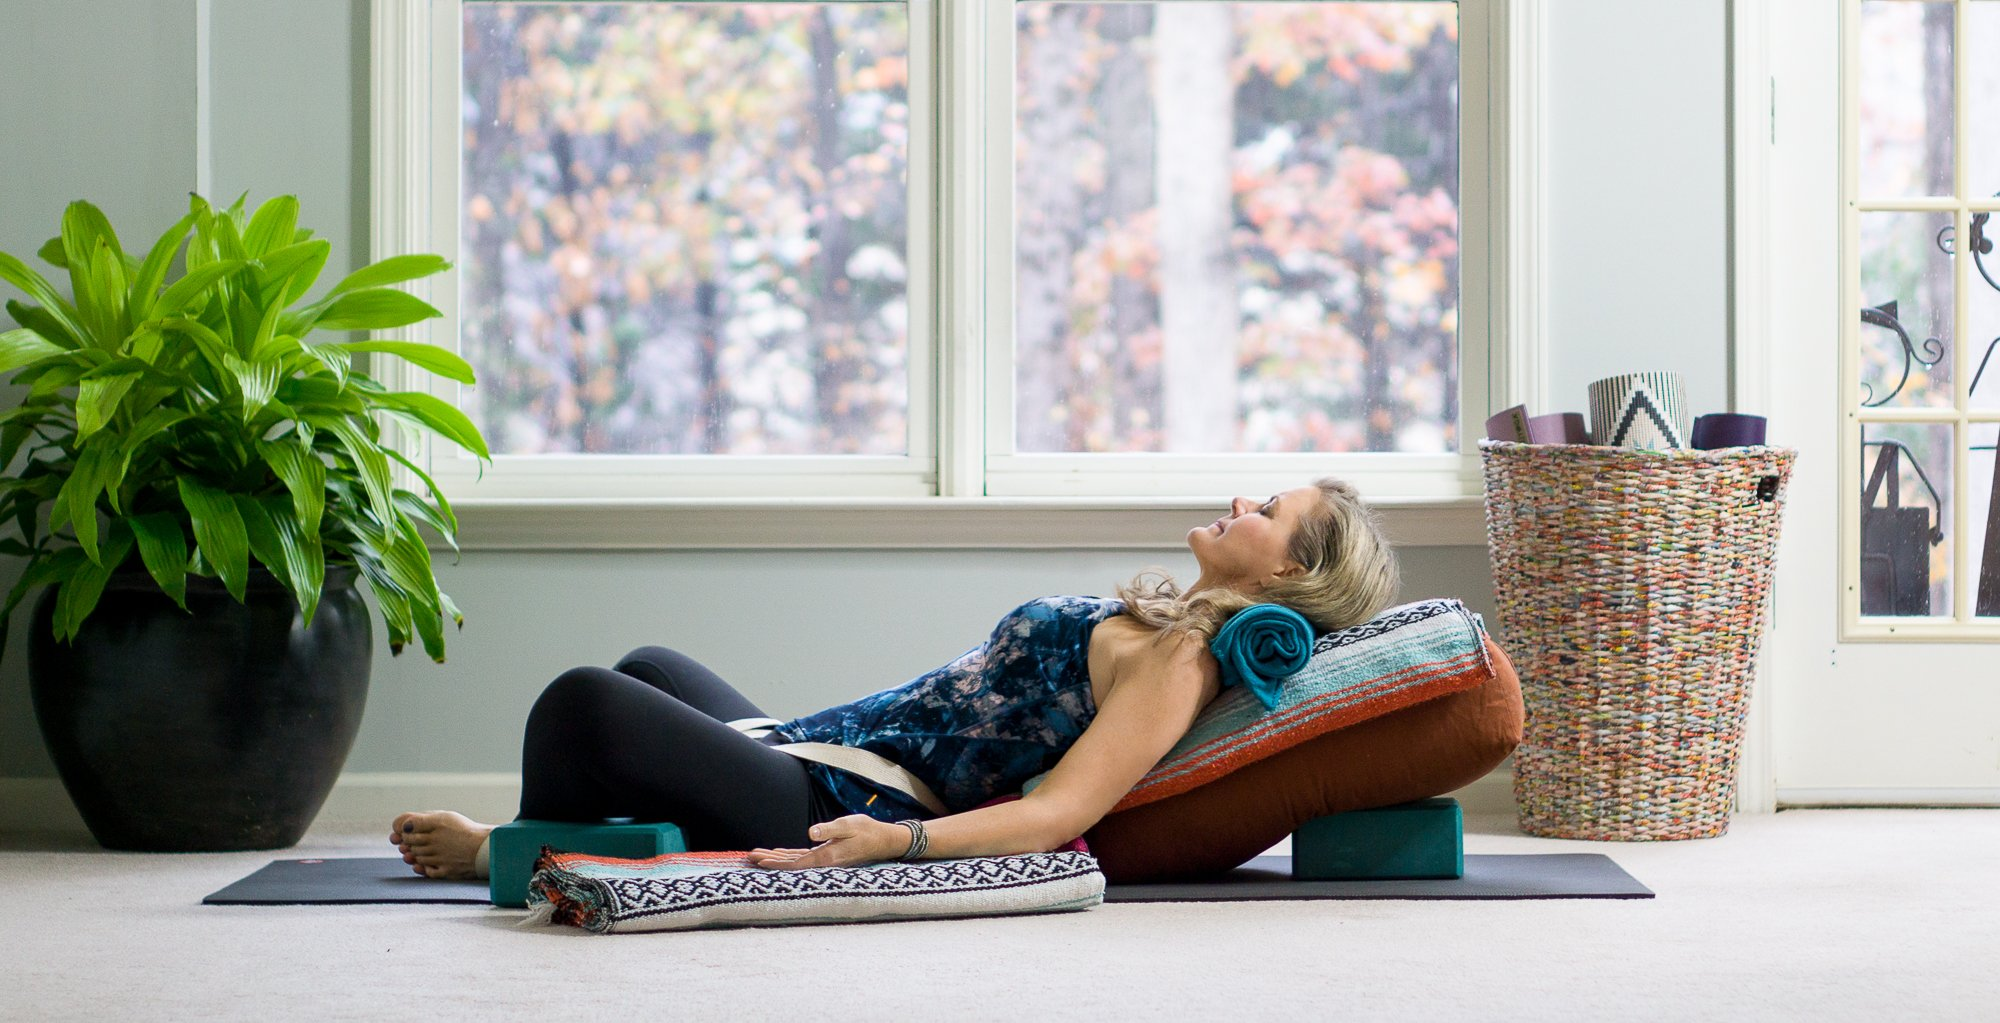 Benefits of Restorative Yoga Mini-Vacation to Relax and Renew